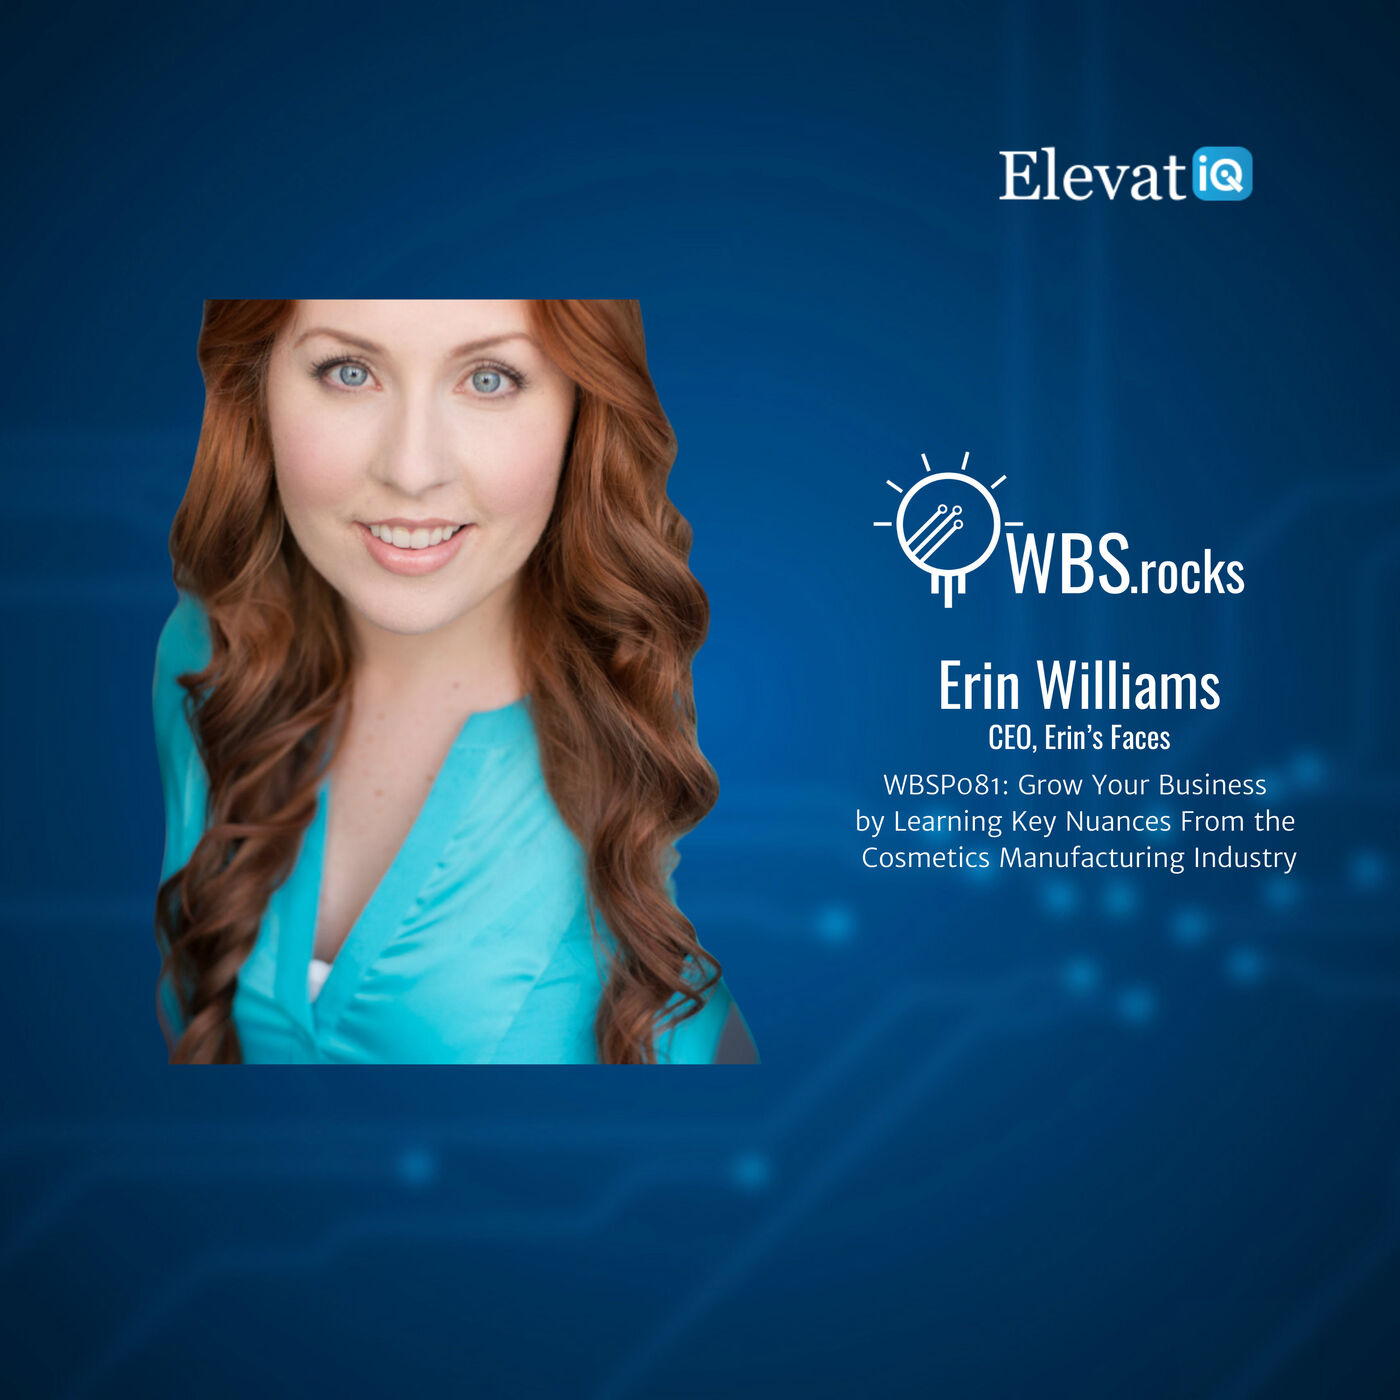 WBSP081: Grow Your Business by Learning Key Nuances From the Cosmetics Manufacturing Industry w/ Erin Williams